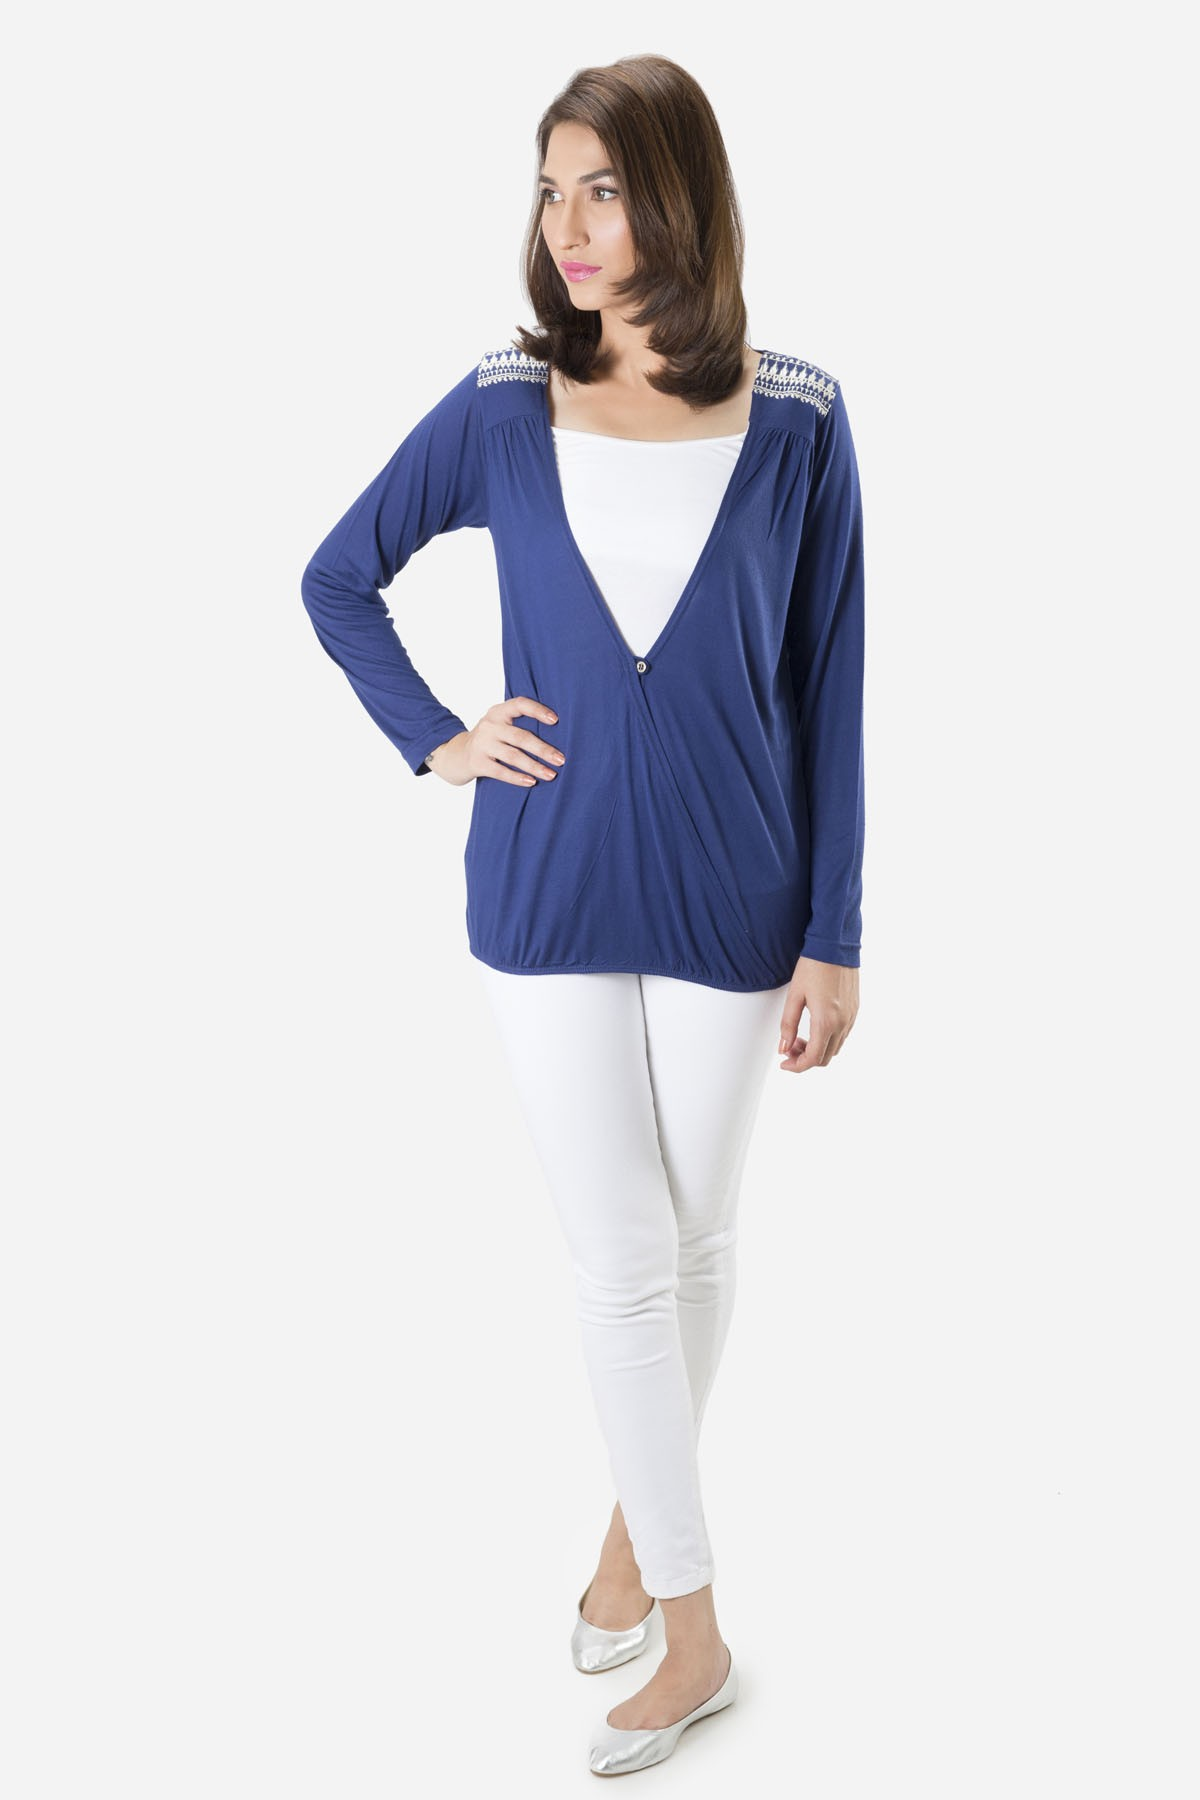 Khaadi-Western-Pret-Stylish-Tops-and-Shirts-for-Women (20)